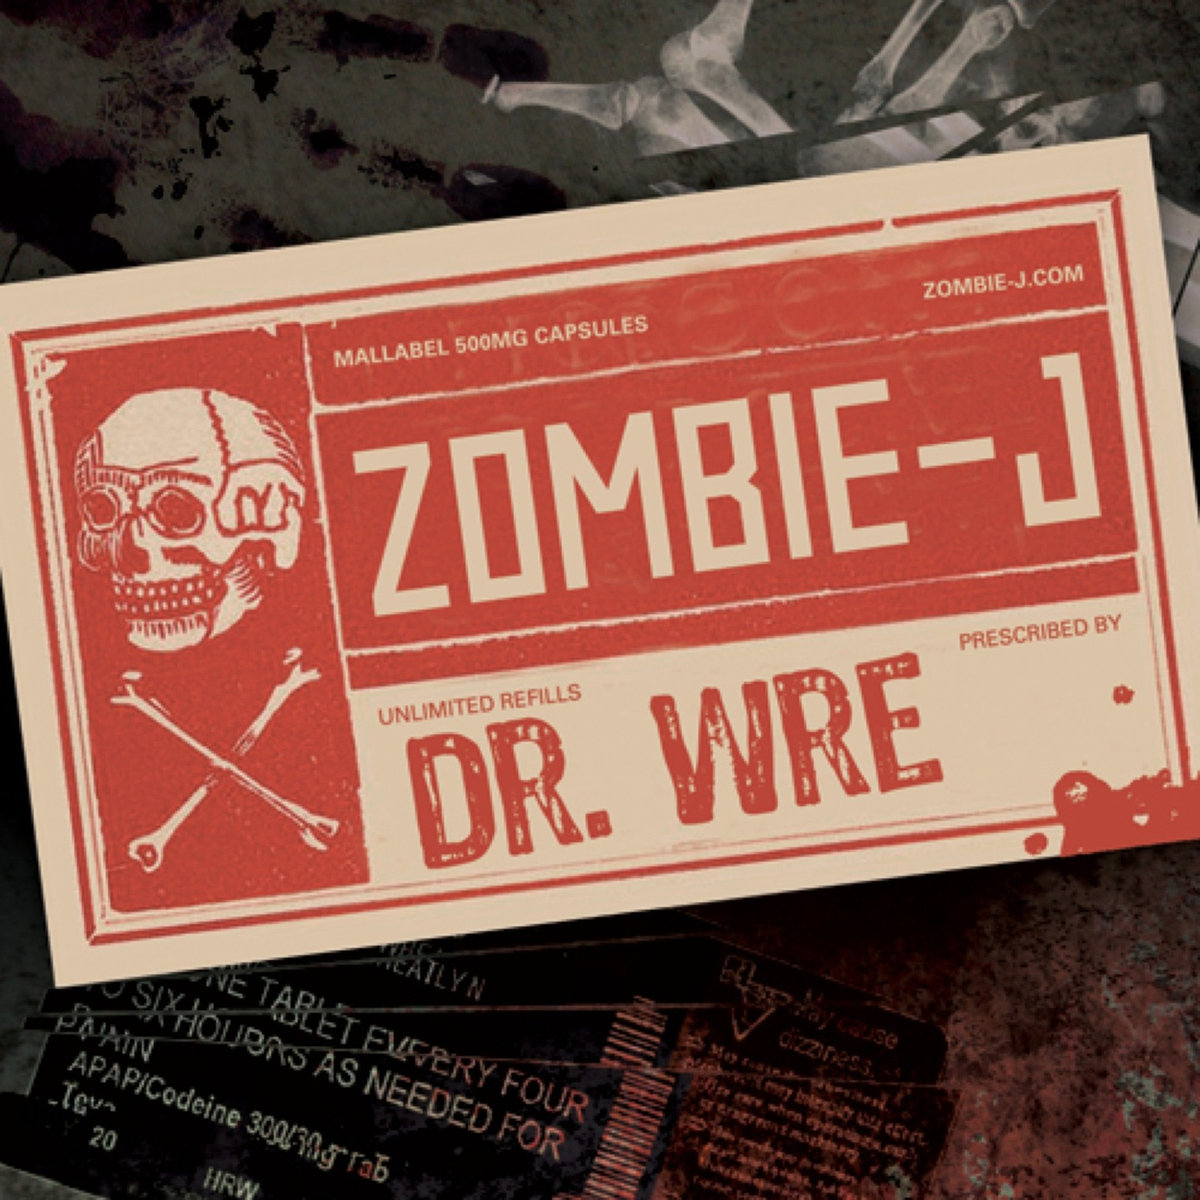 Zombie-J - Dr. Wre (artwork)